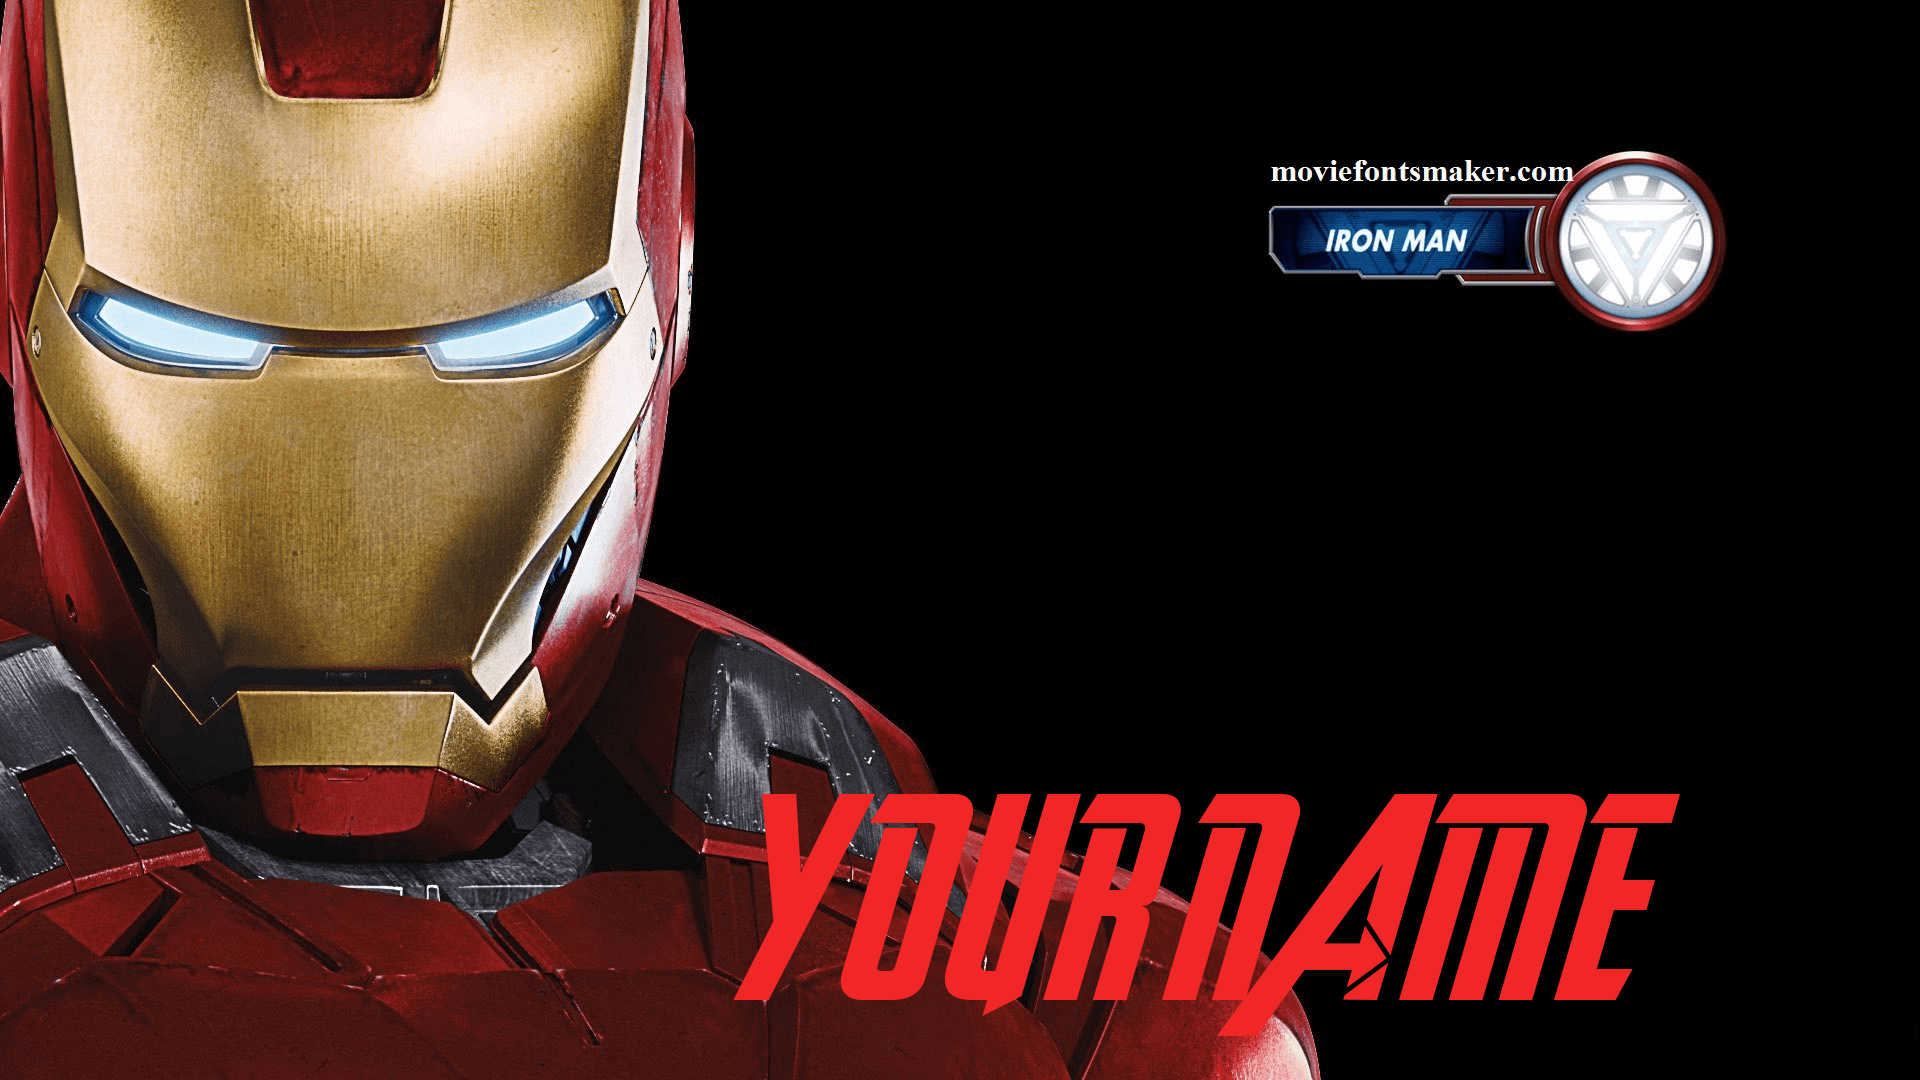 Movie Fonts Maker | Create Your Name in Avengers Movie Fonts Styles